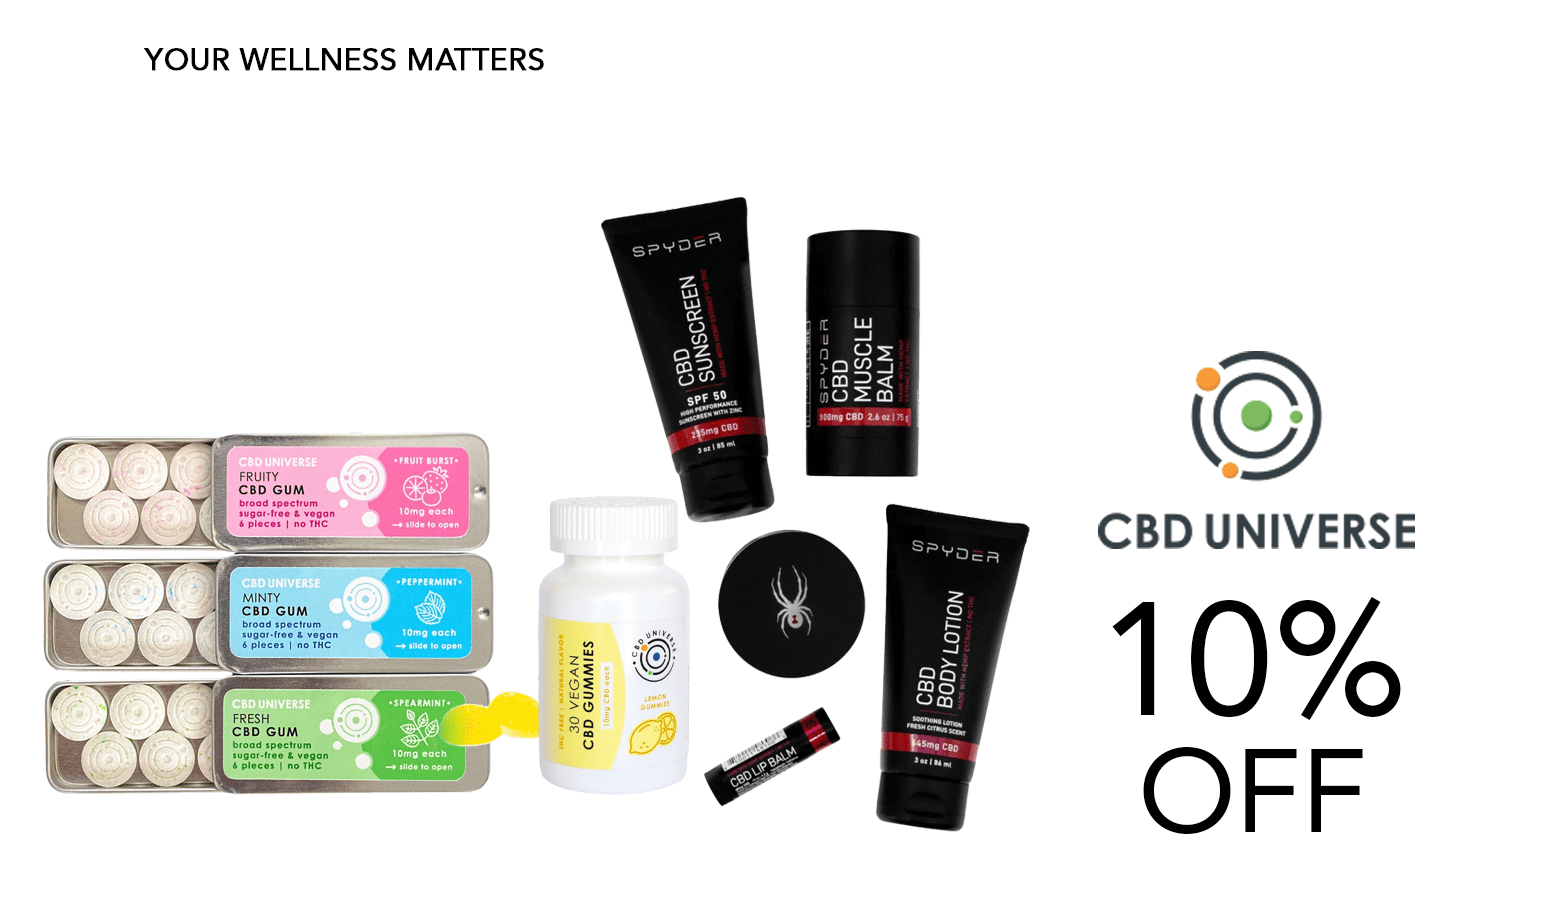 CBD Universe Coupons Offer Website